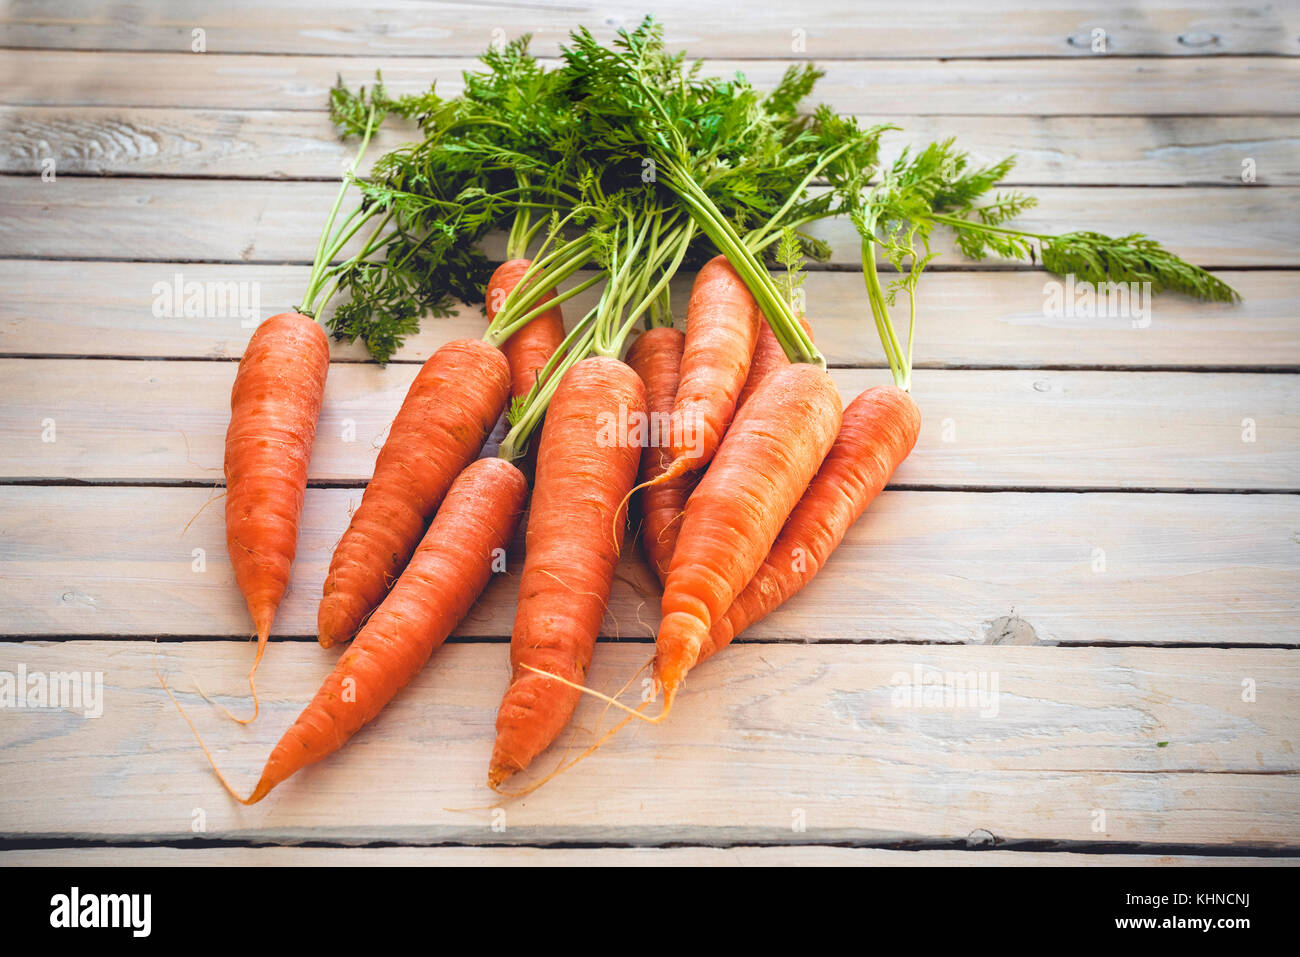 Raw carrots with green plants on a wooden table - Stock Image